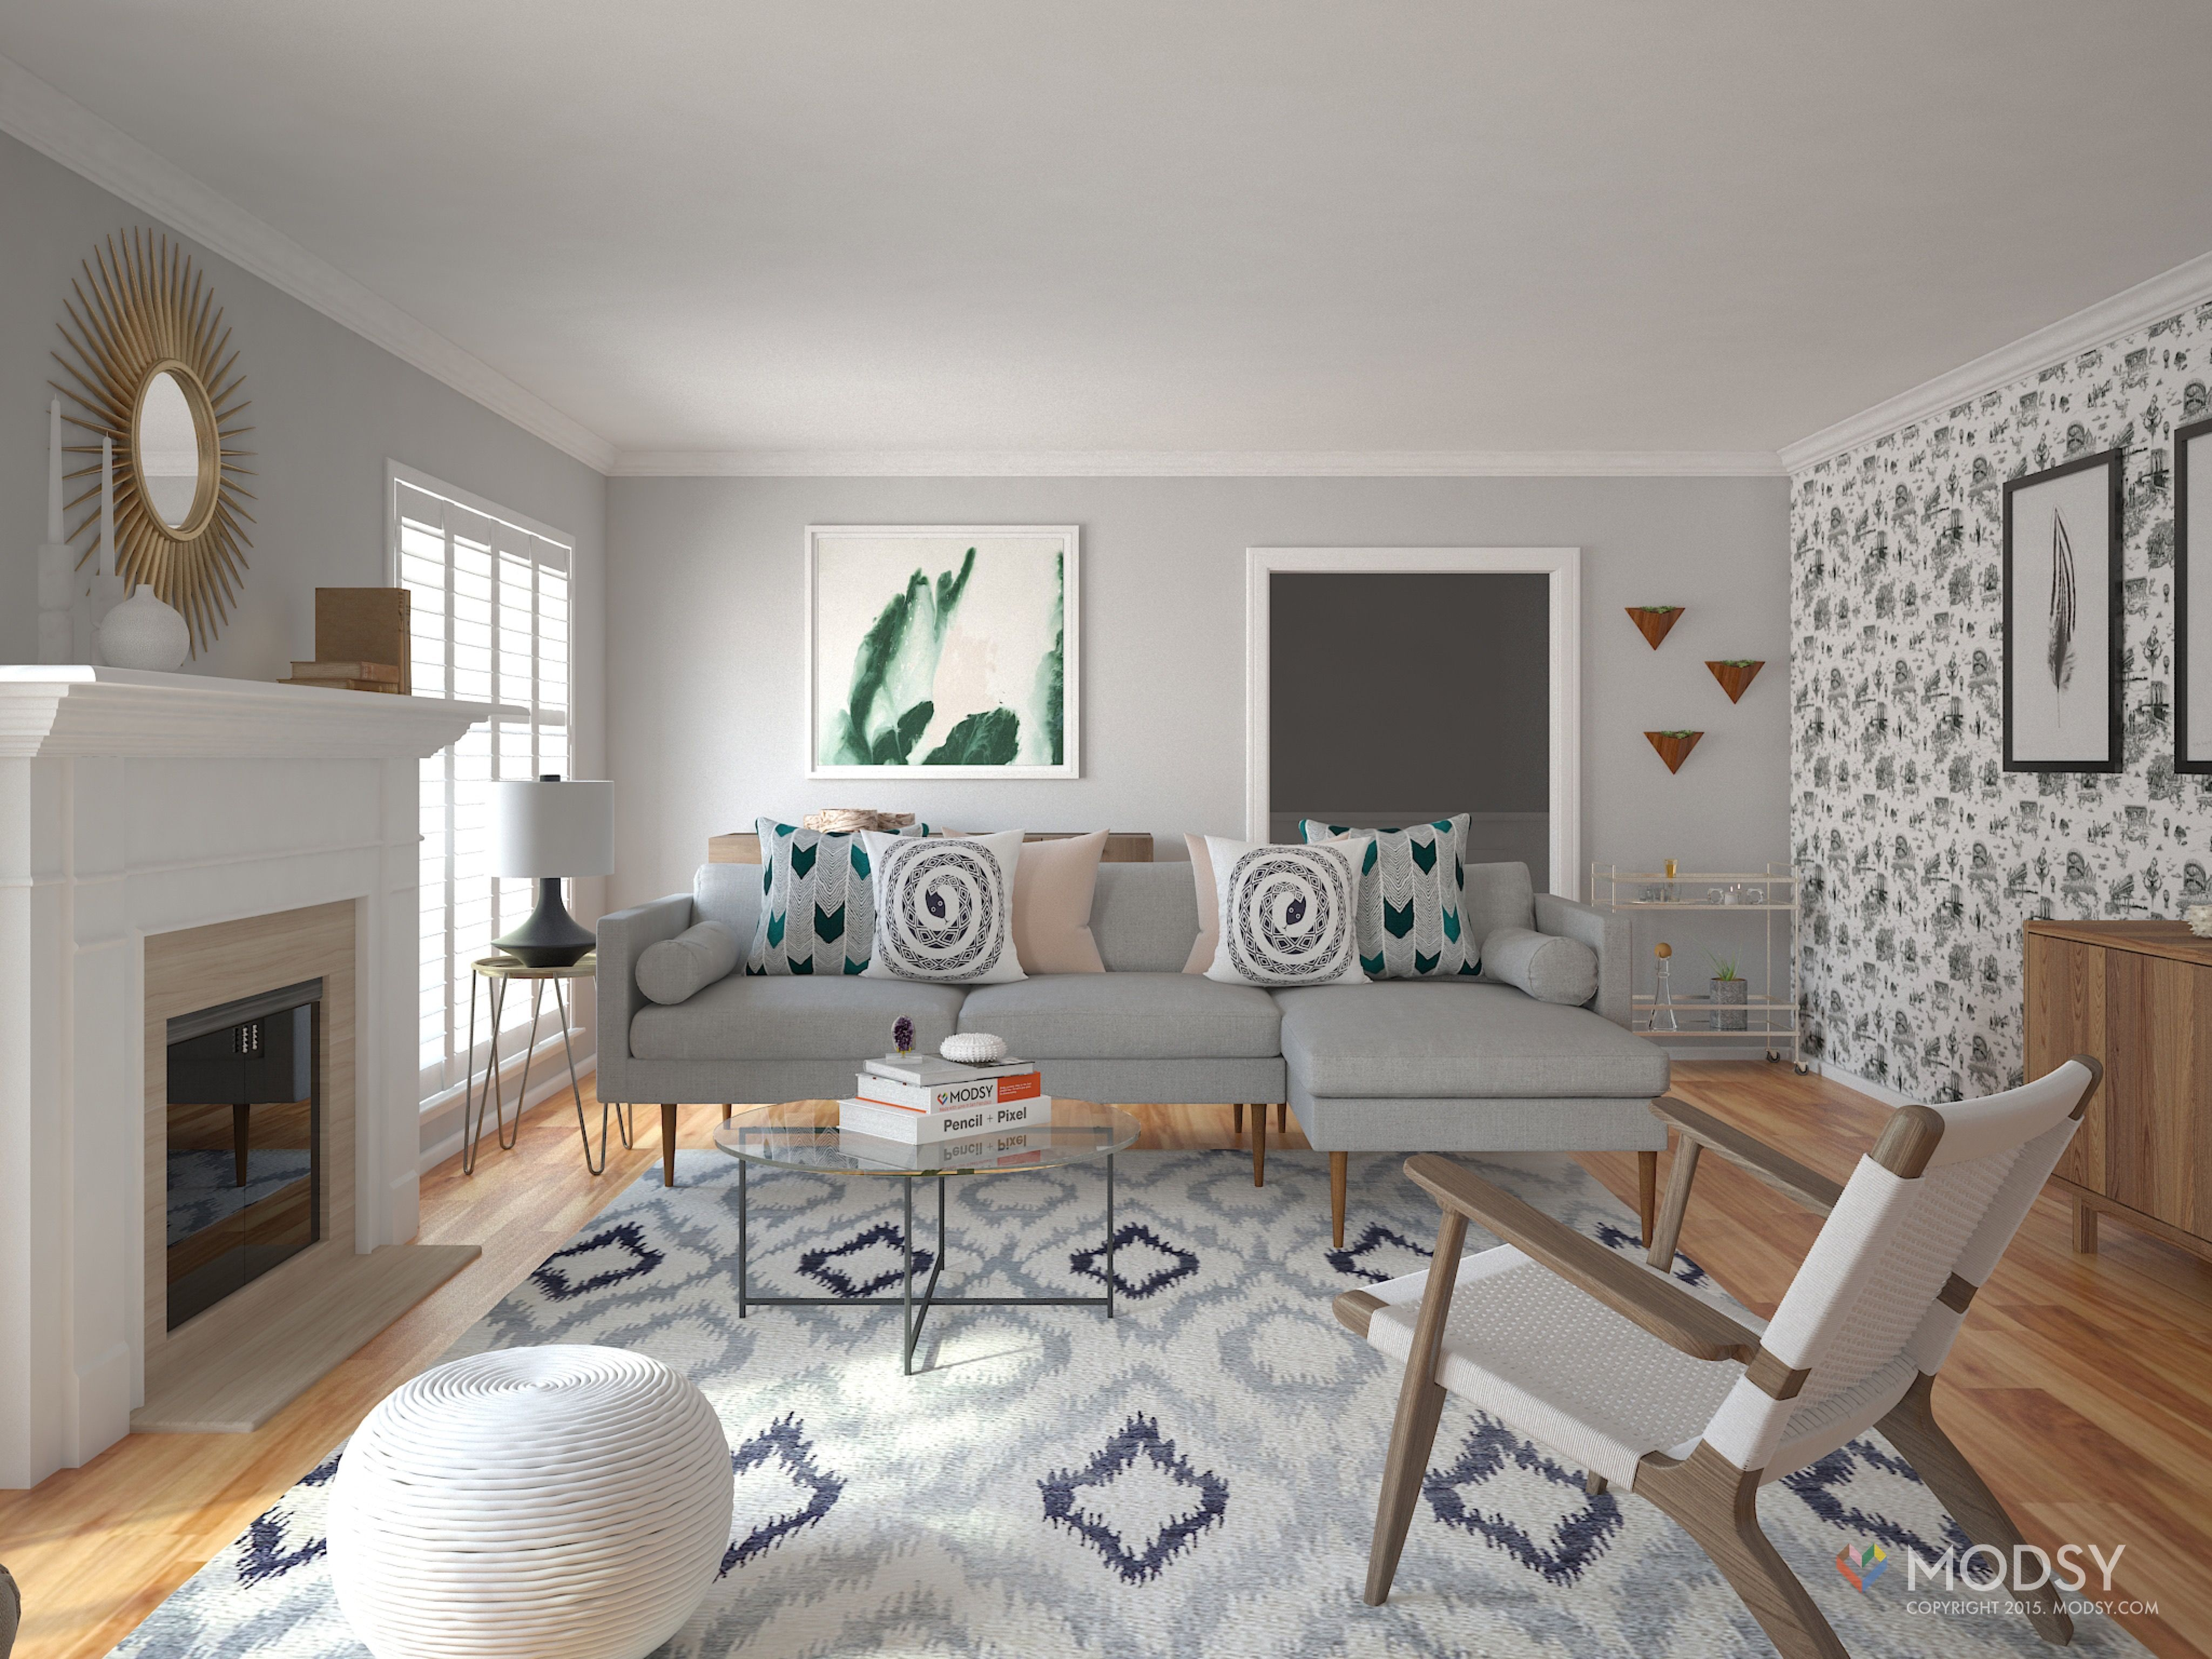 Modsy 3D rendering  Minimalist Eclectic Living Room. Modsy 3D rendering  Minimalist Eclectic Living Room    modsymagic